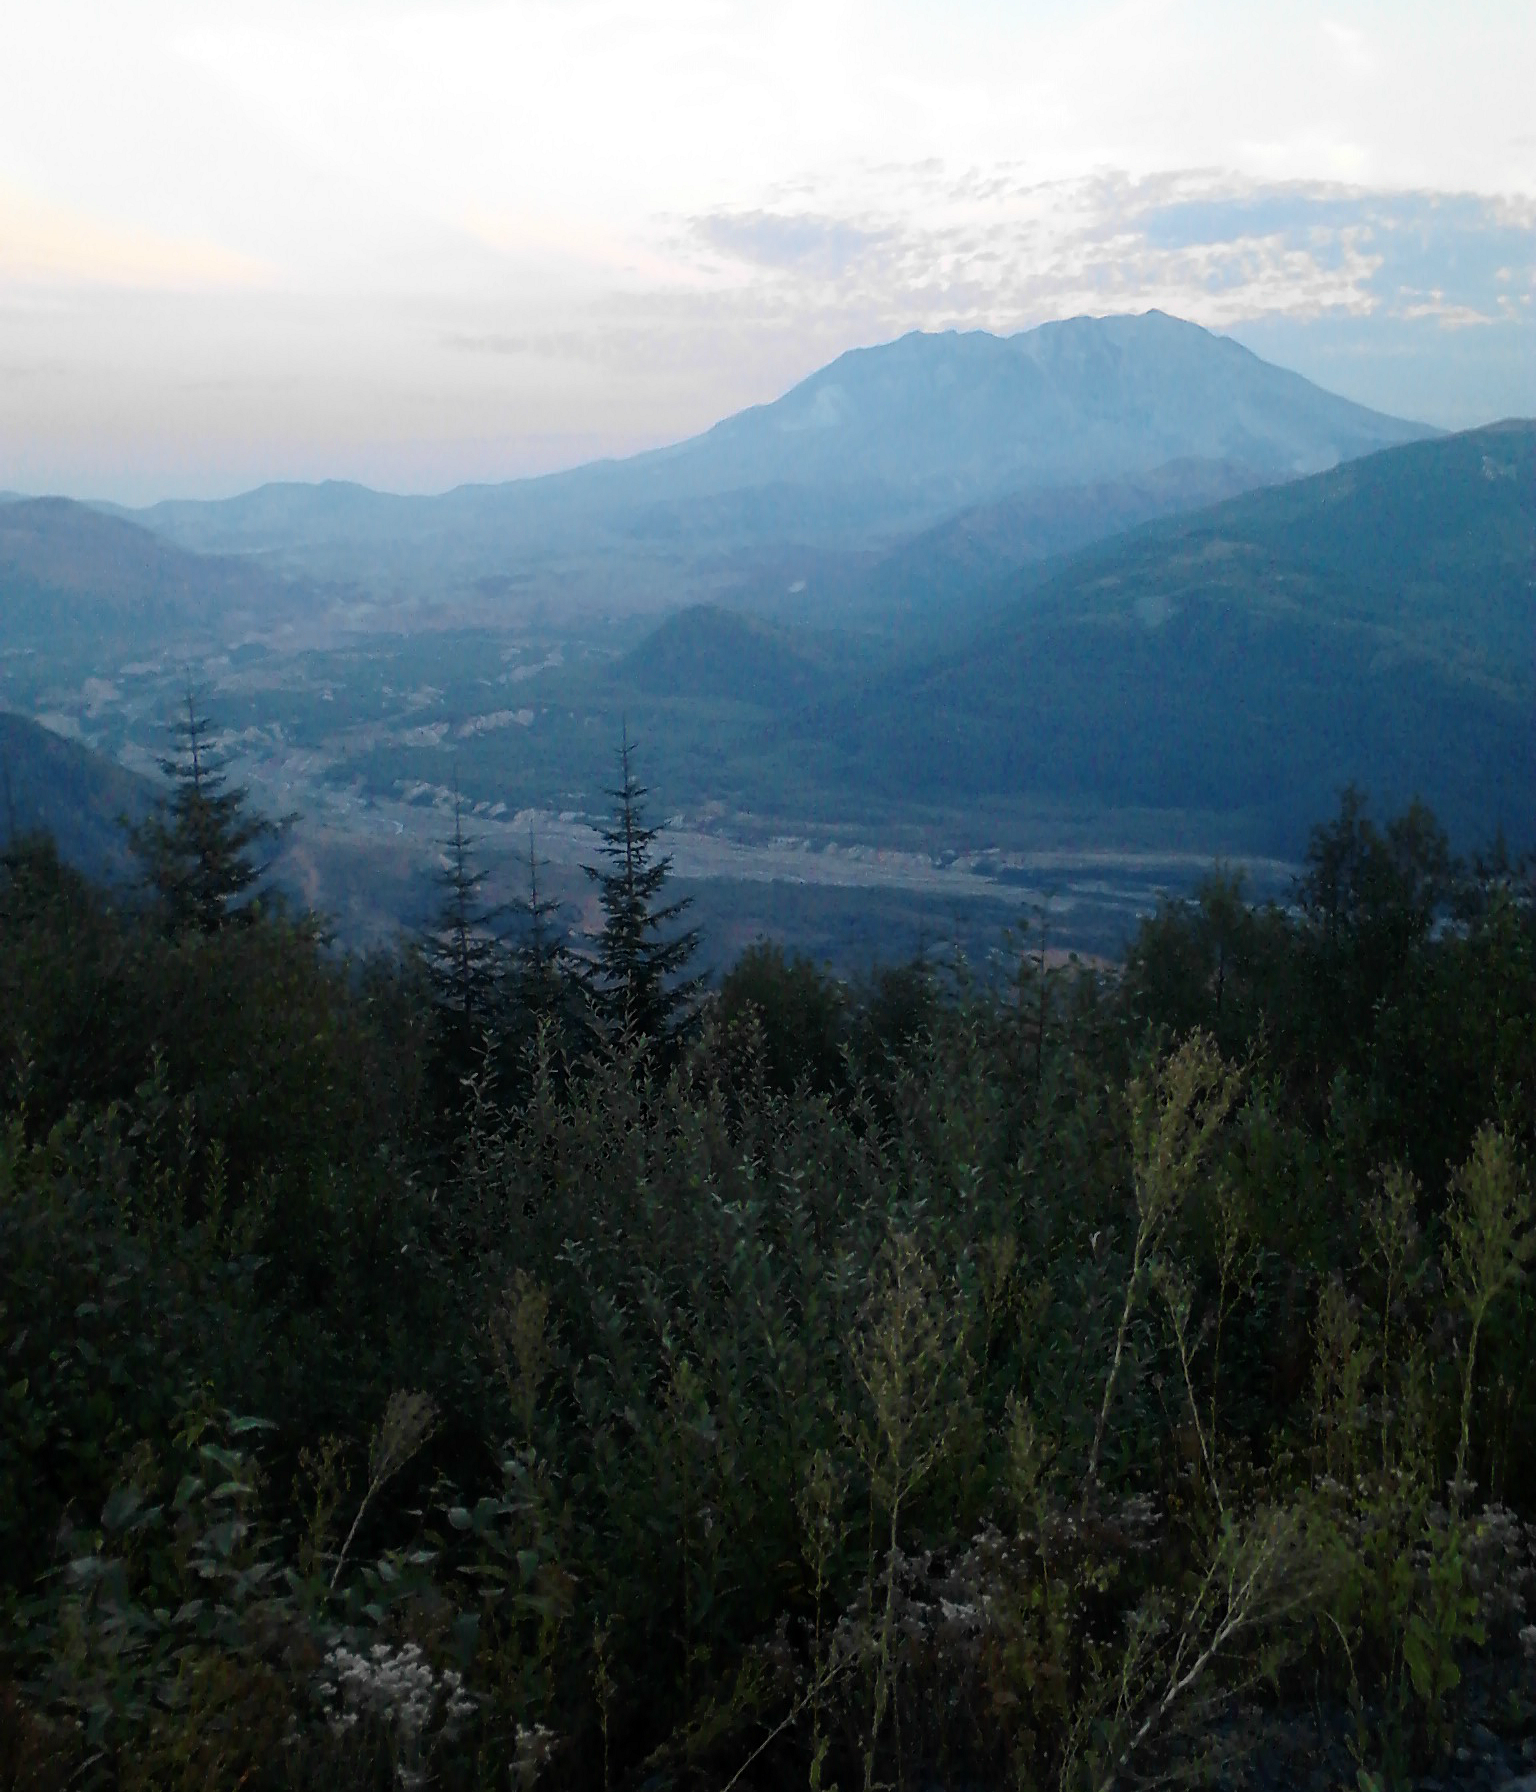 Mt Saint Helens Near Sunset via @JanalynVoigt